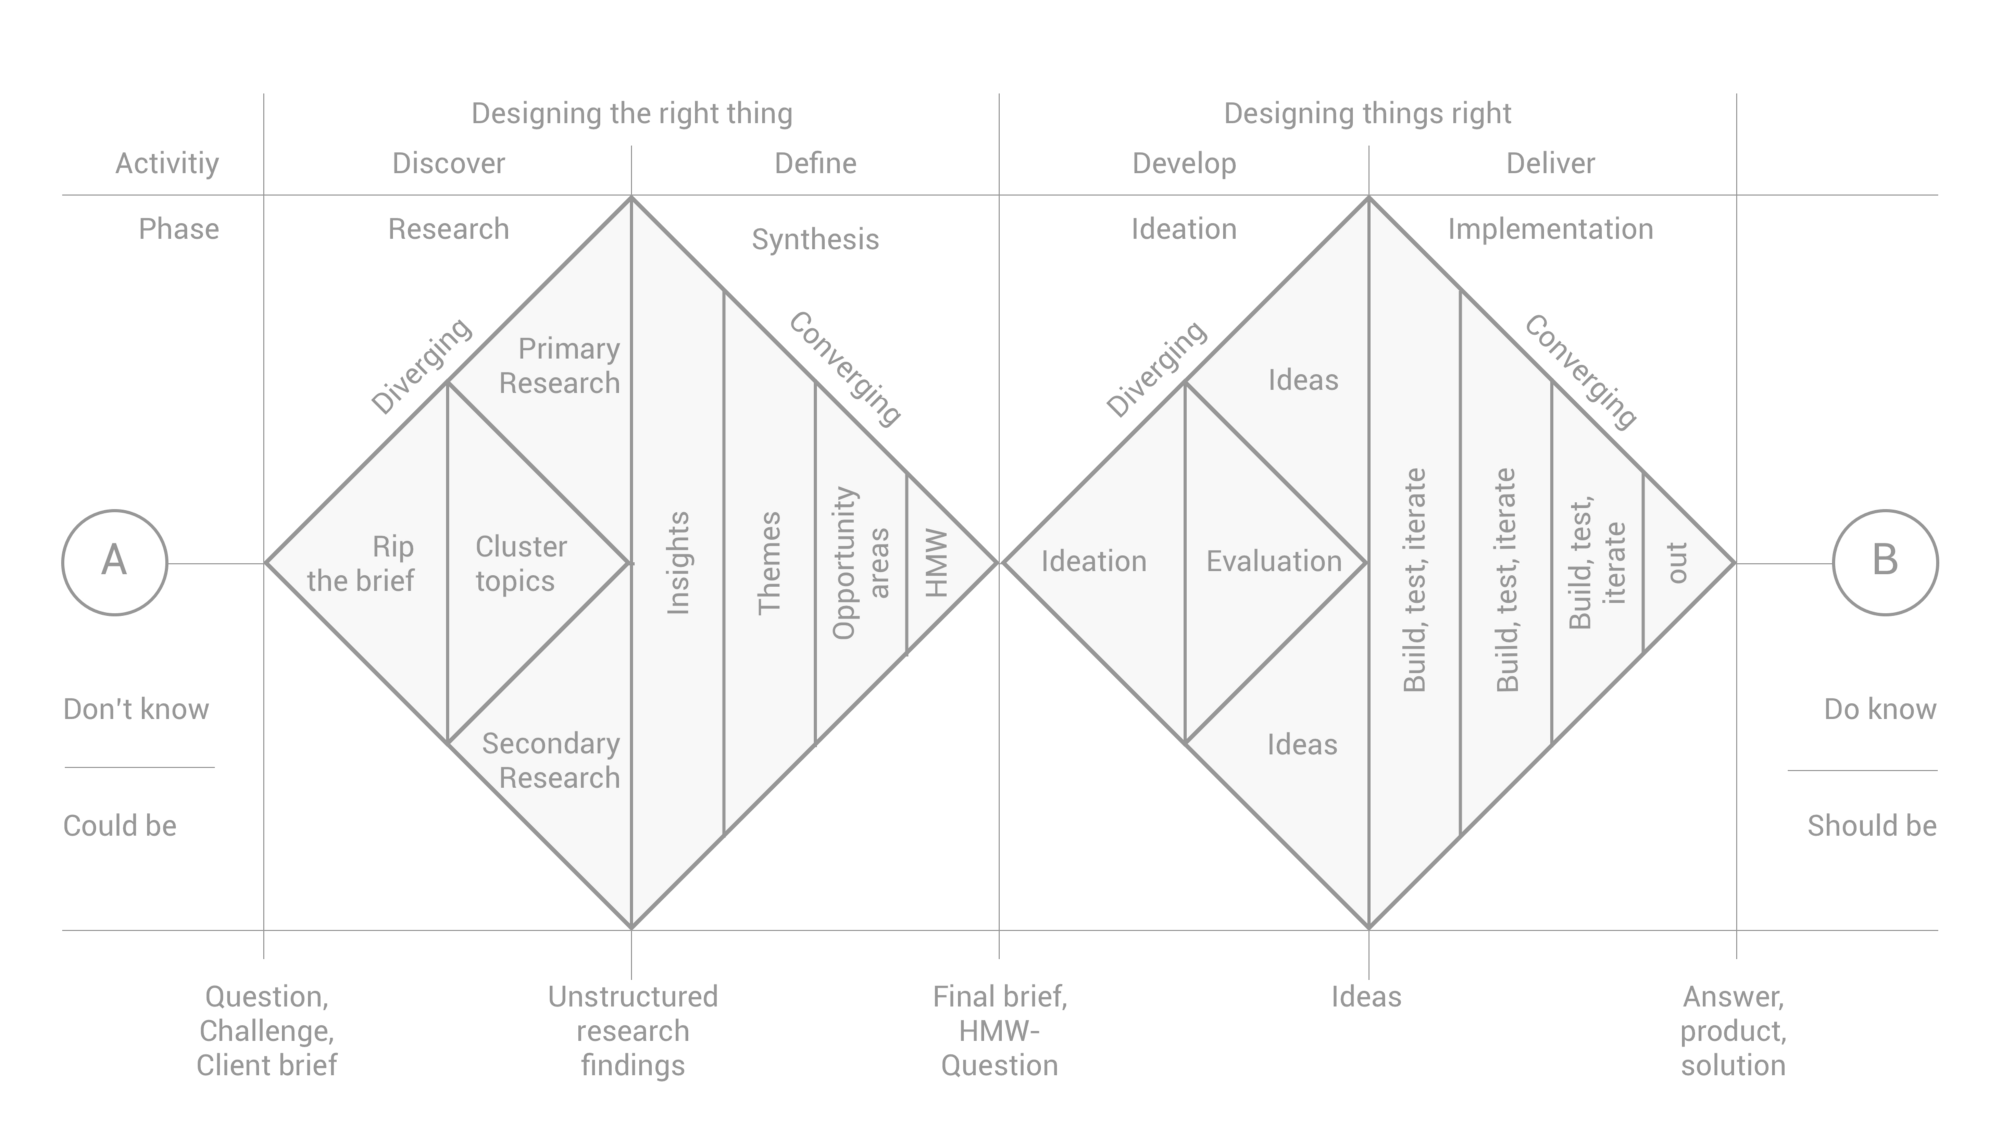 Diagram by: Nessler, D. (2017). How to apply a design thinking, HCD, UX or any creative process from scratch . [online] Medium. Available at: https://medium.com/digital-experience-design/how-to-apply-a-design-thinking-hcd-ux-or-any-creative-process-from-scratch-b8786efbf812 [Accessed 28 Nov. 2017].